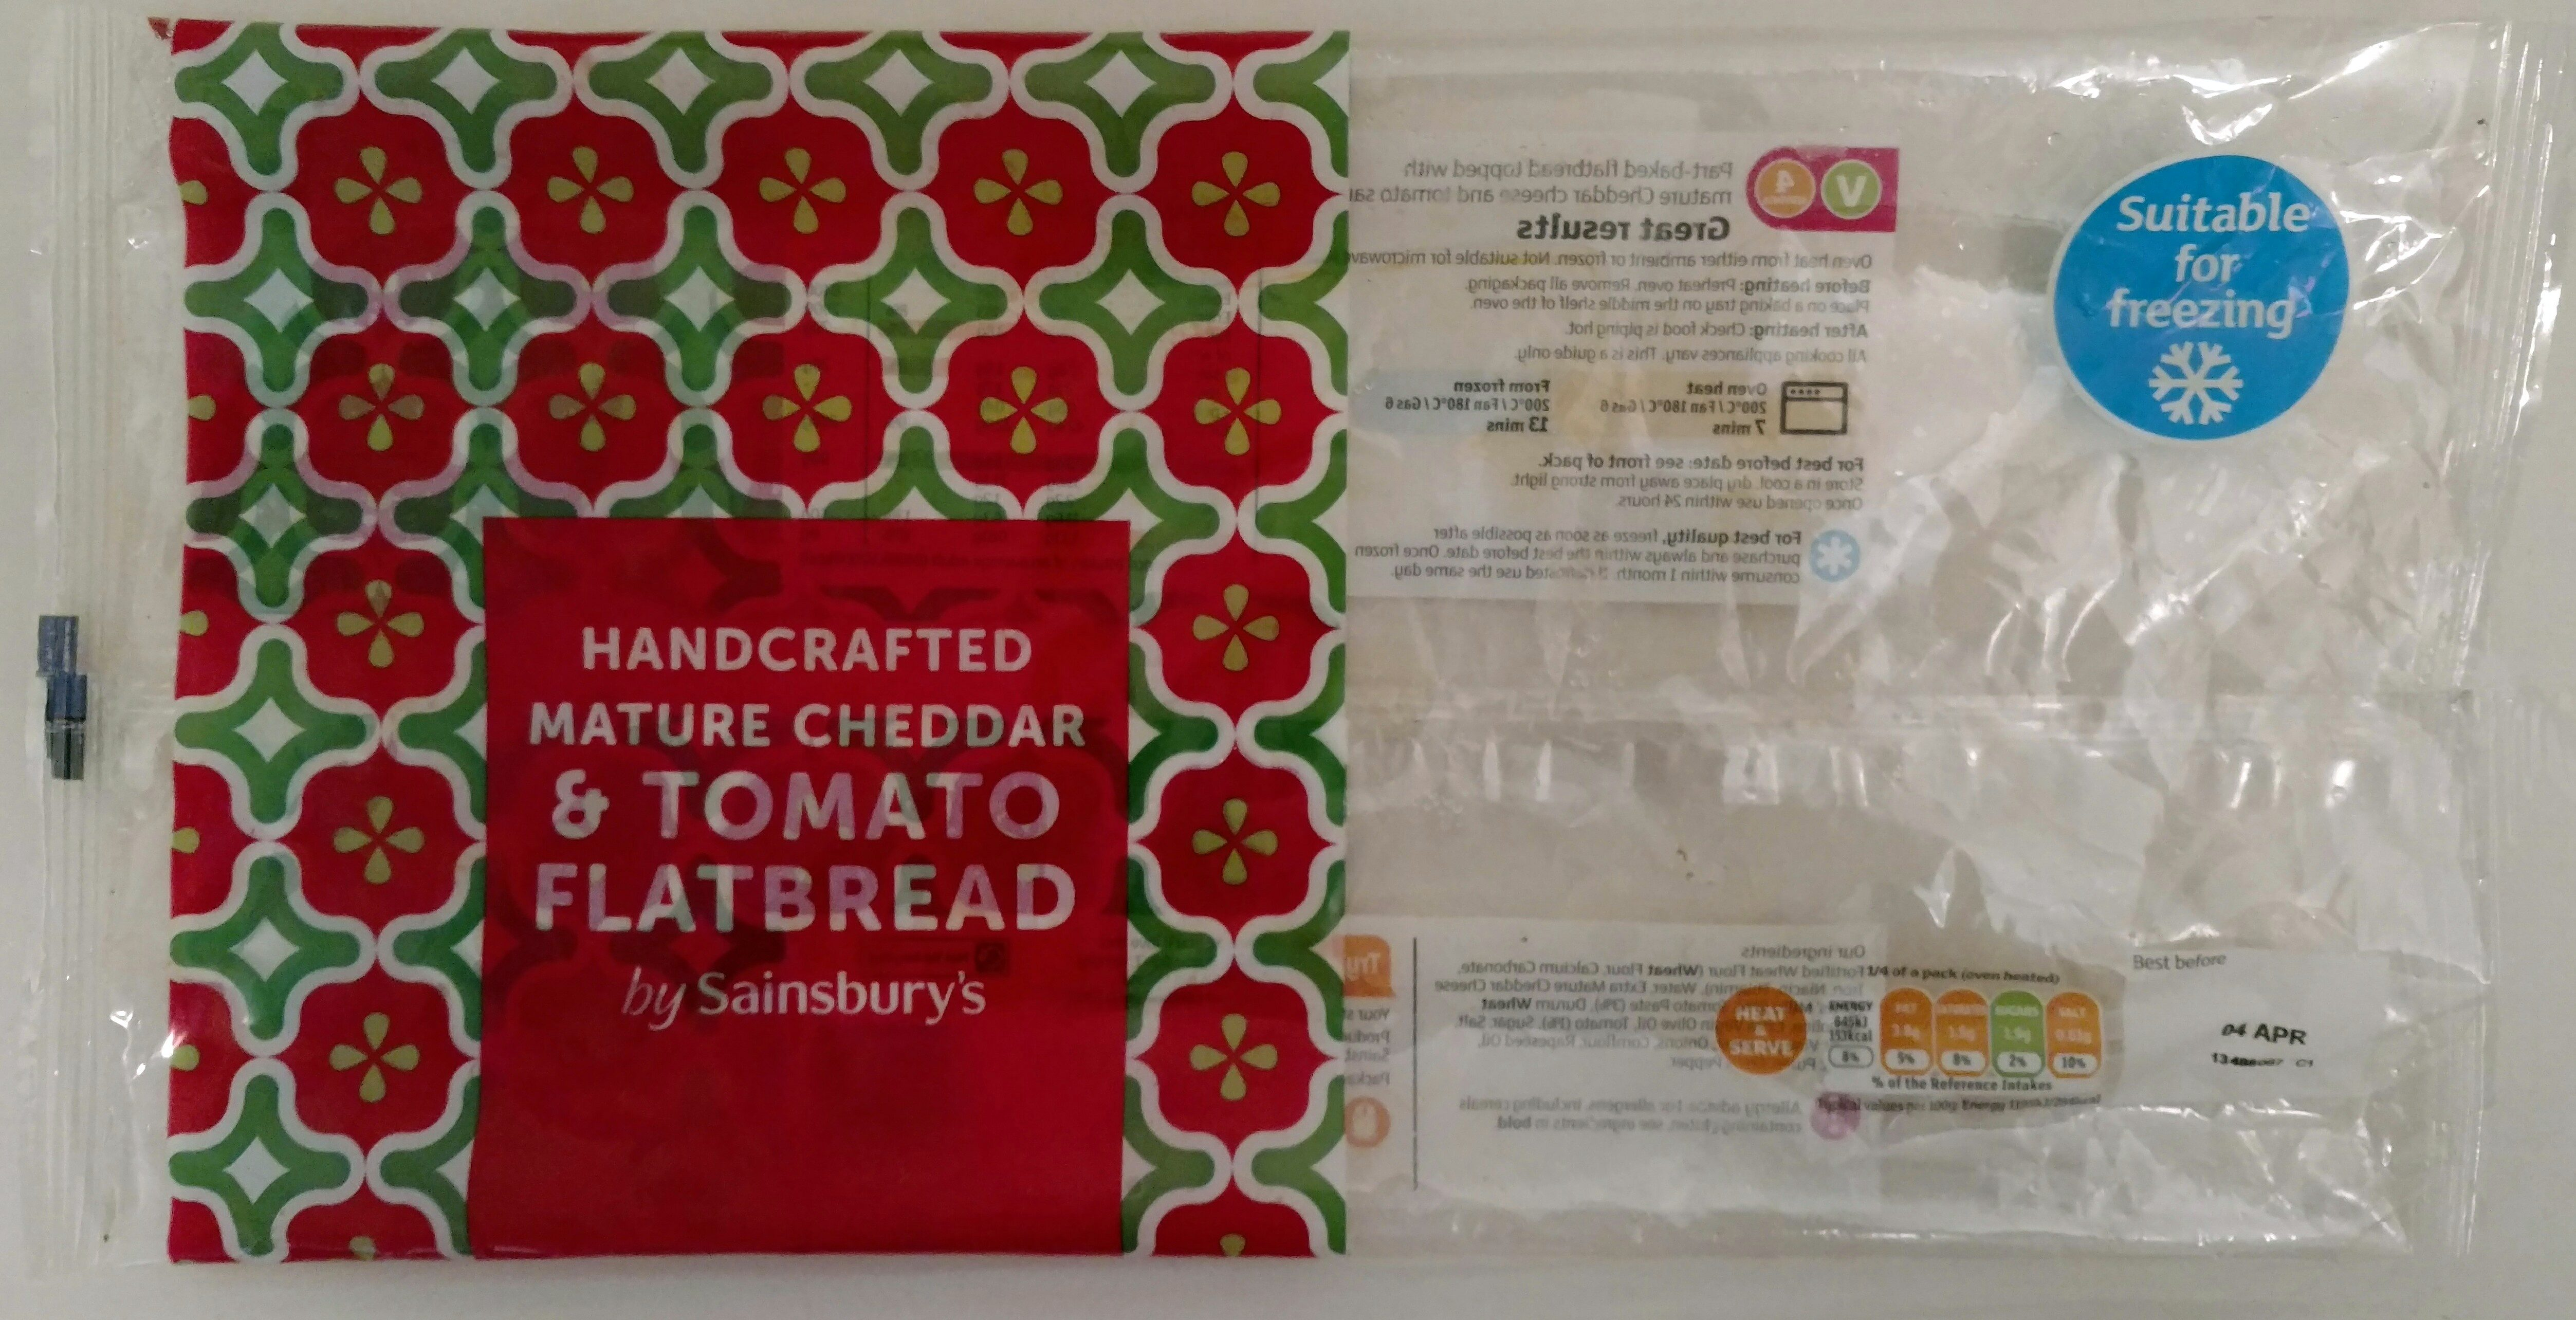 Handcrafted mature cheddar & tomato flatbread - Product